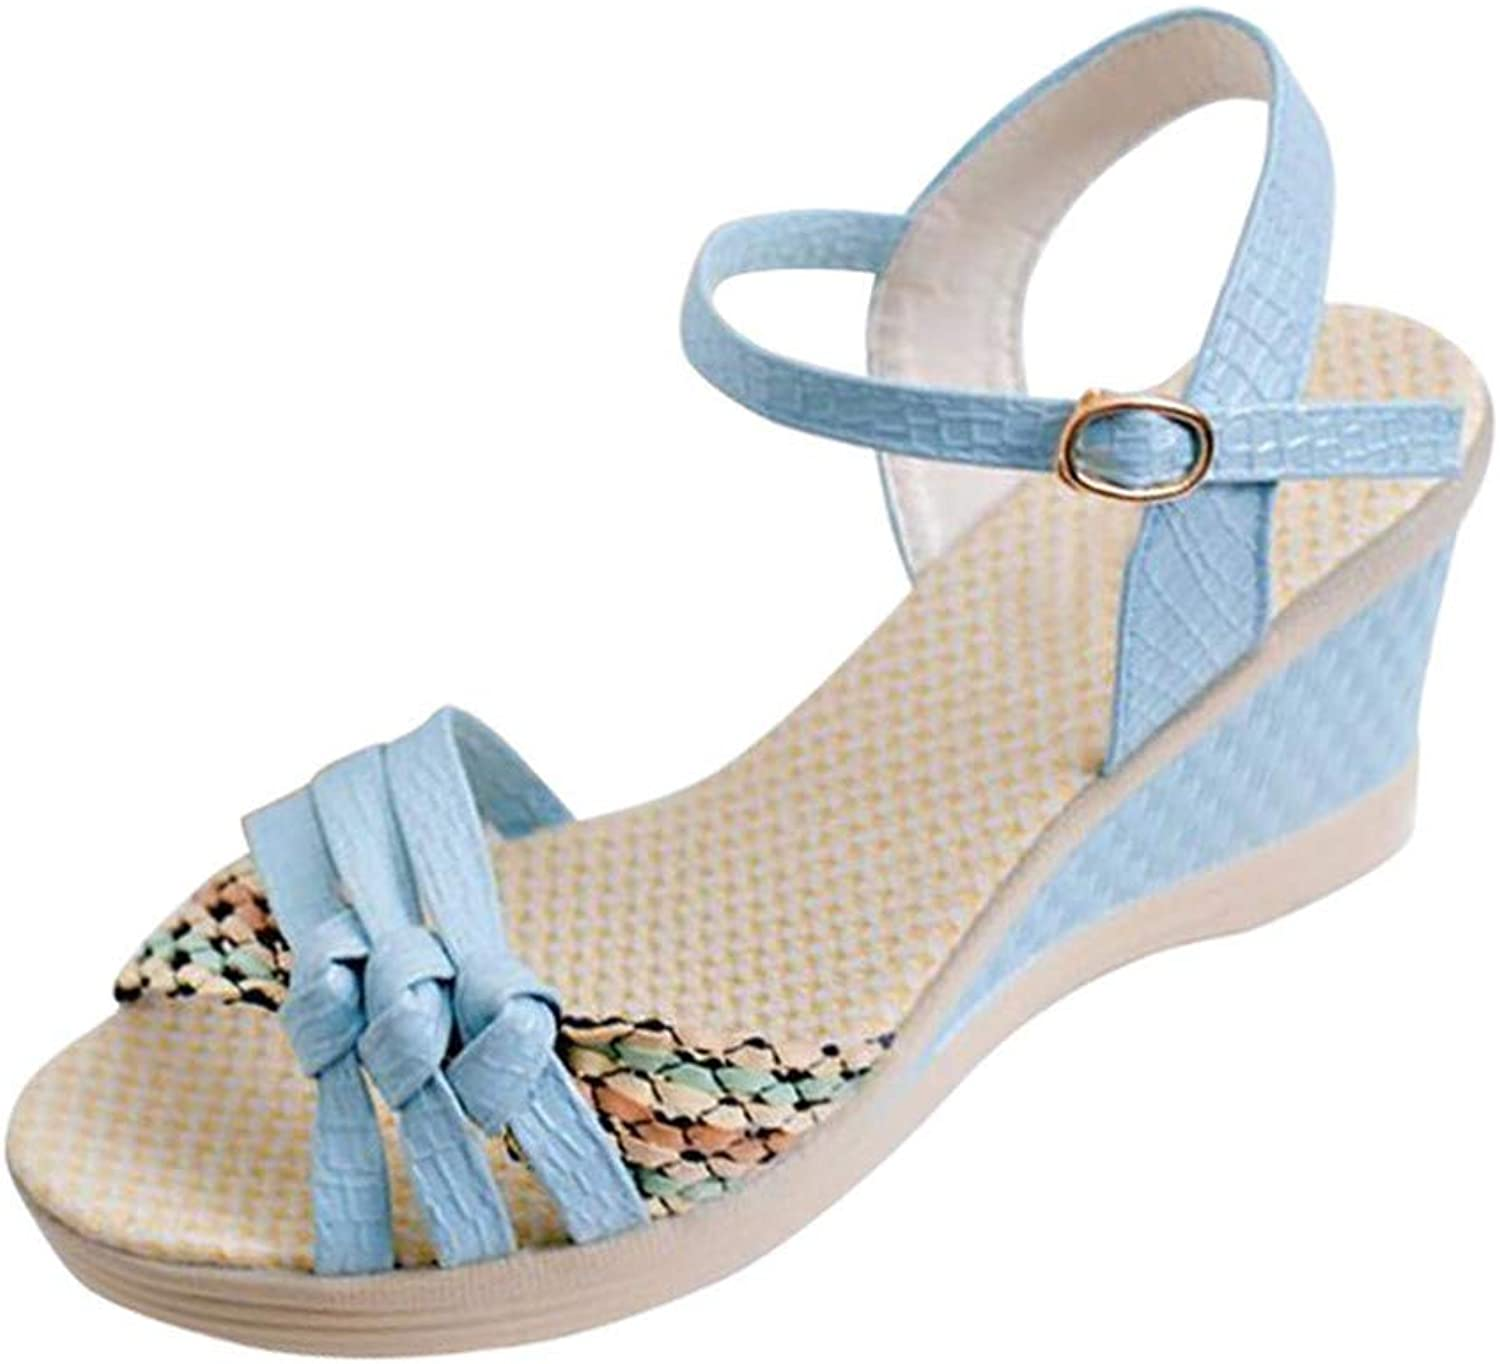 Summer Women Wedges Sandals Sweet Style Ladies Platform Gladiator Sandals Open Toe Flats shoes